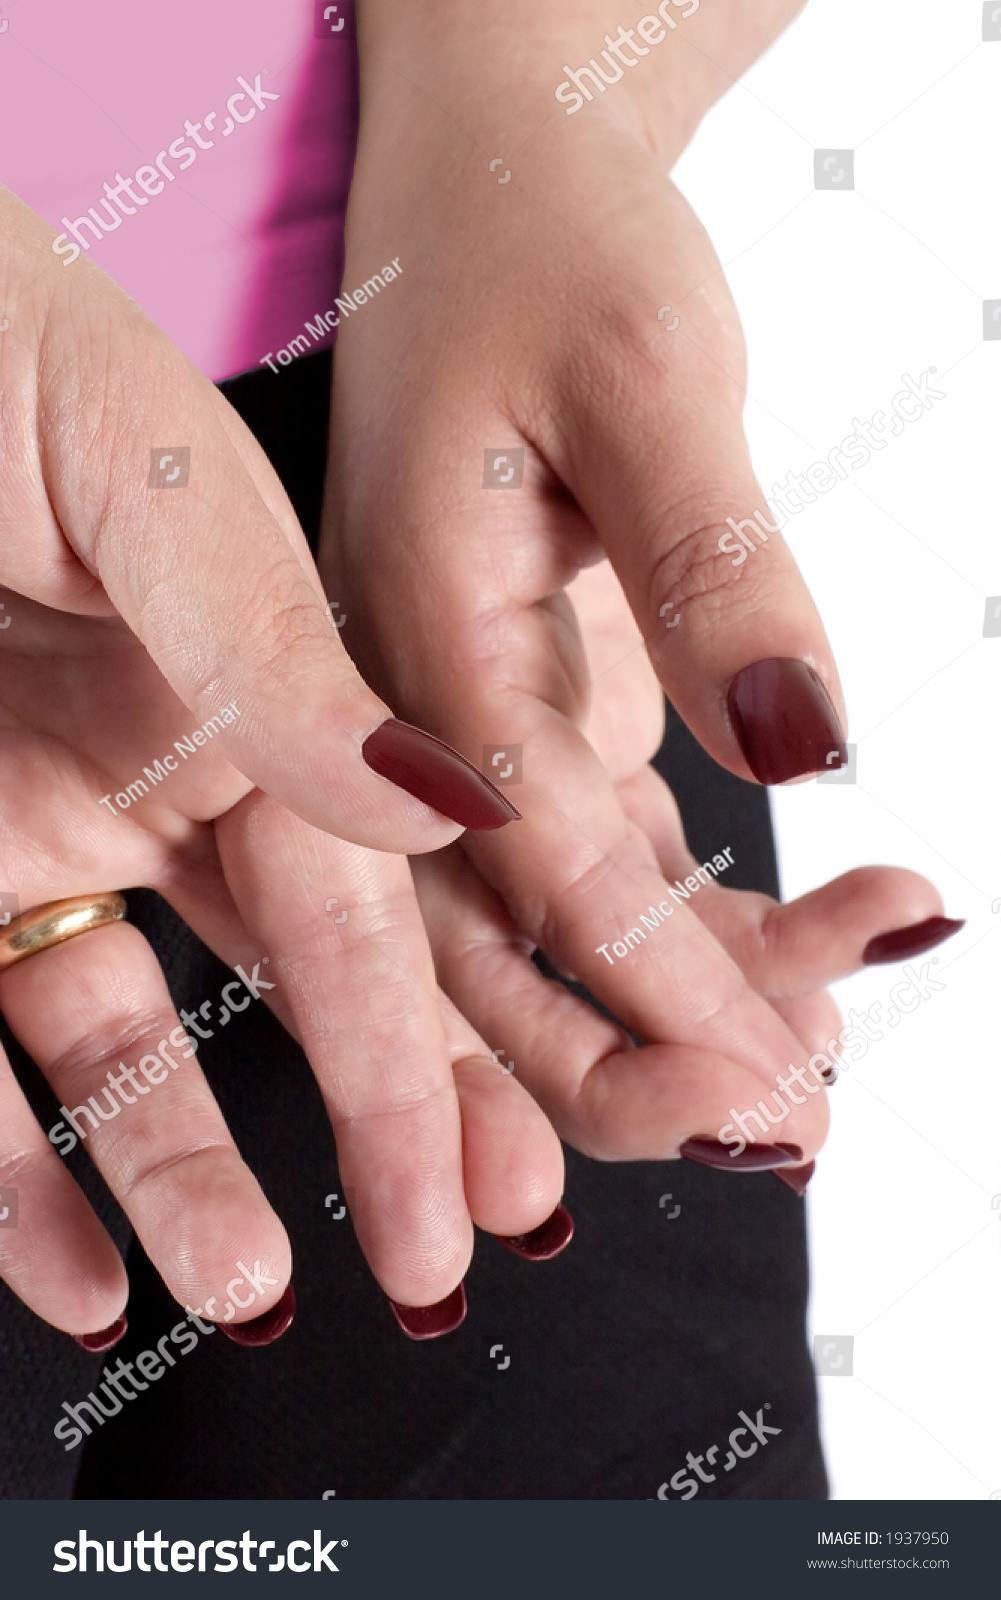 Young Woman Her Fingers Crossed Behind Stock Photo (Royalty Free ...